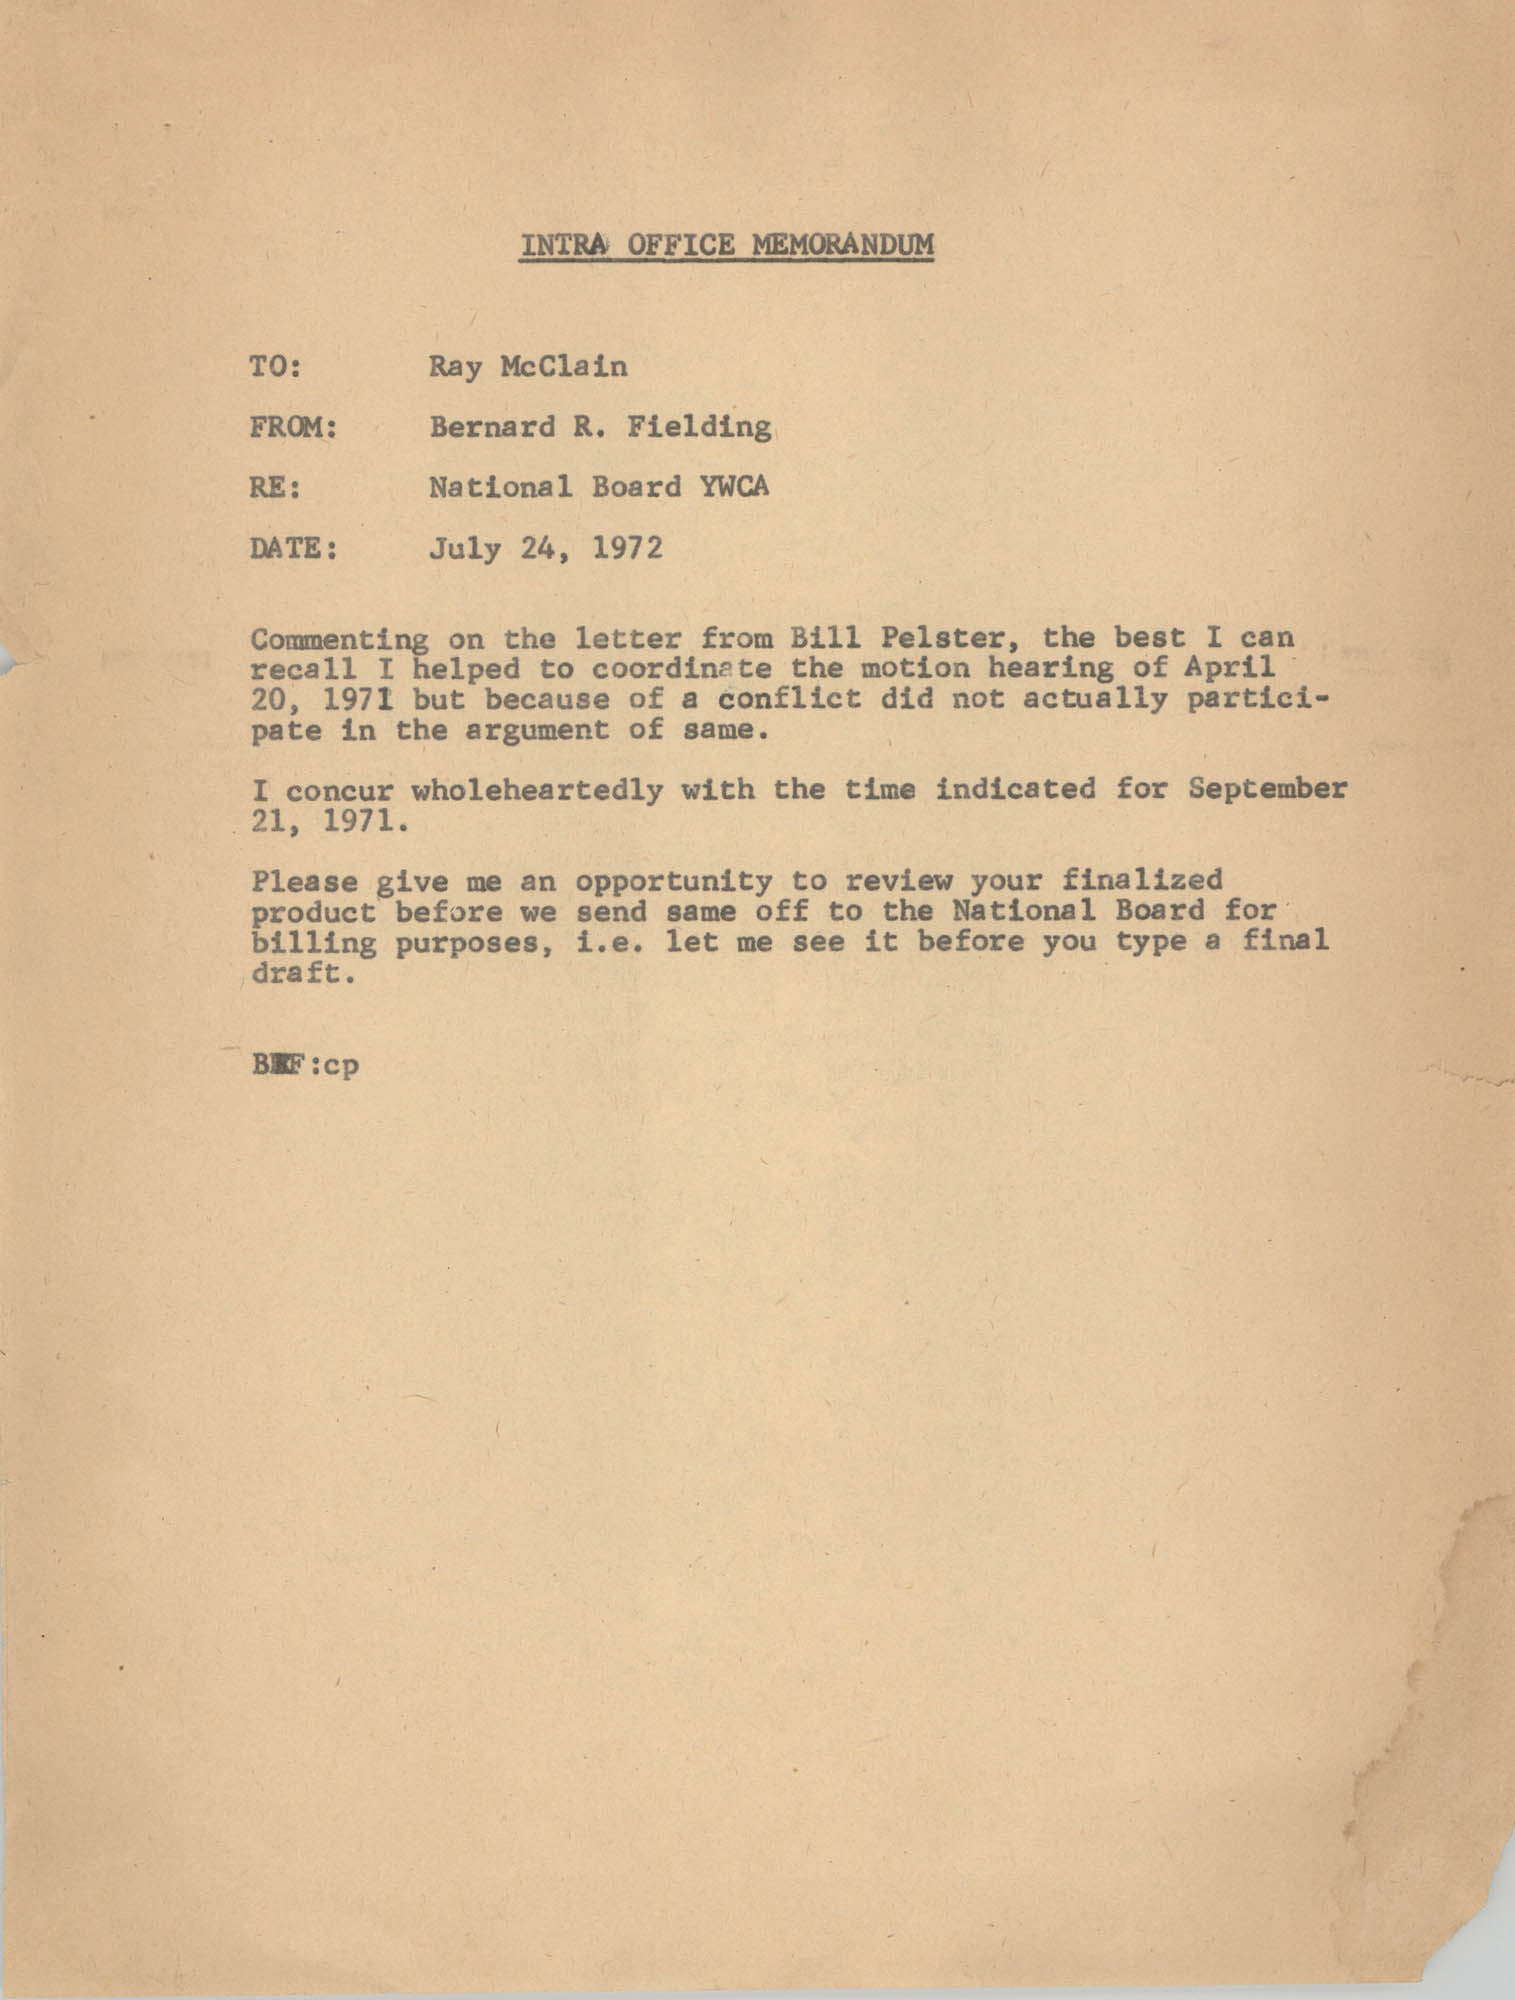 Memorandum from Bernard R. Fielding to Ray McClain, July 24, 1972